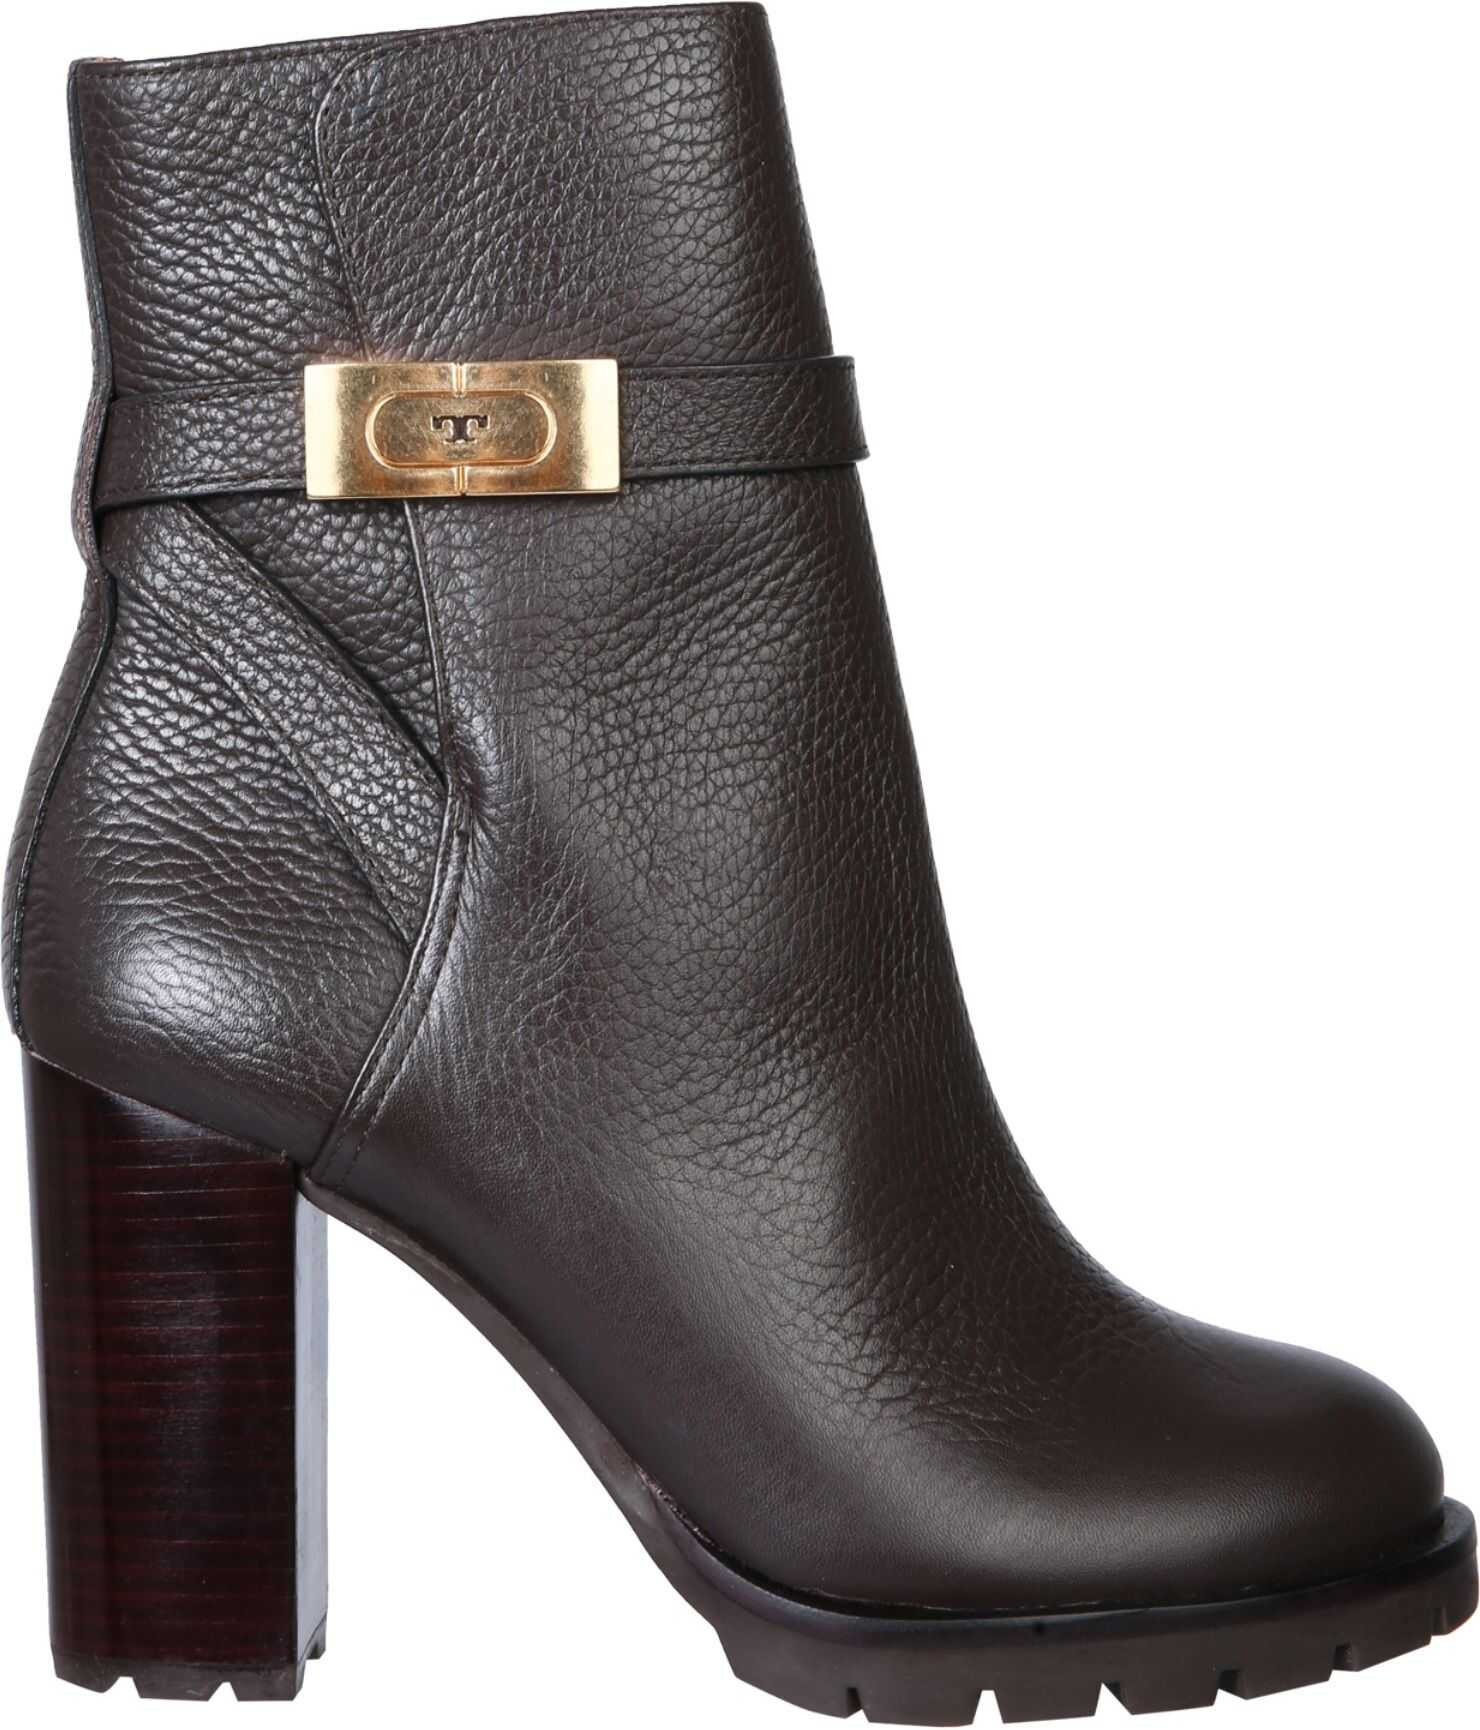 Tory Burch Boots With Logo 74355_200 BROWN imagine b-mall.ro